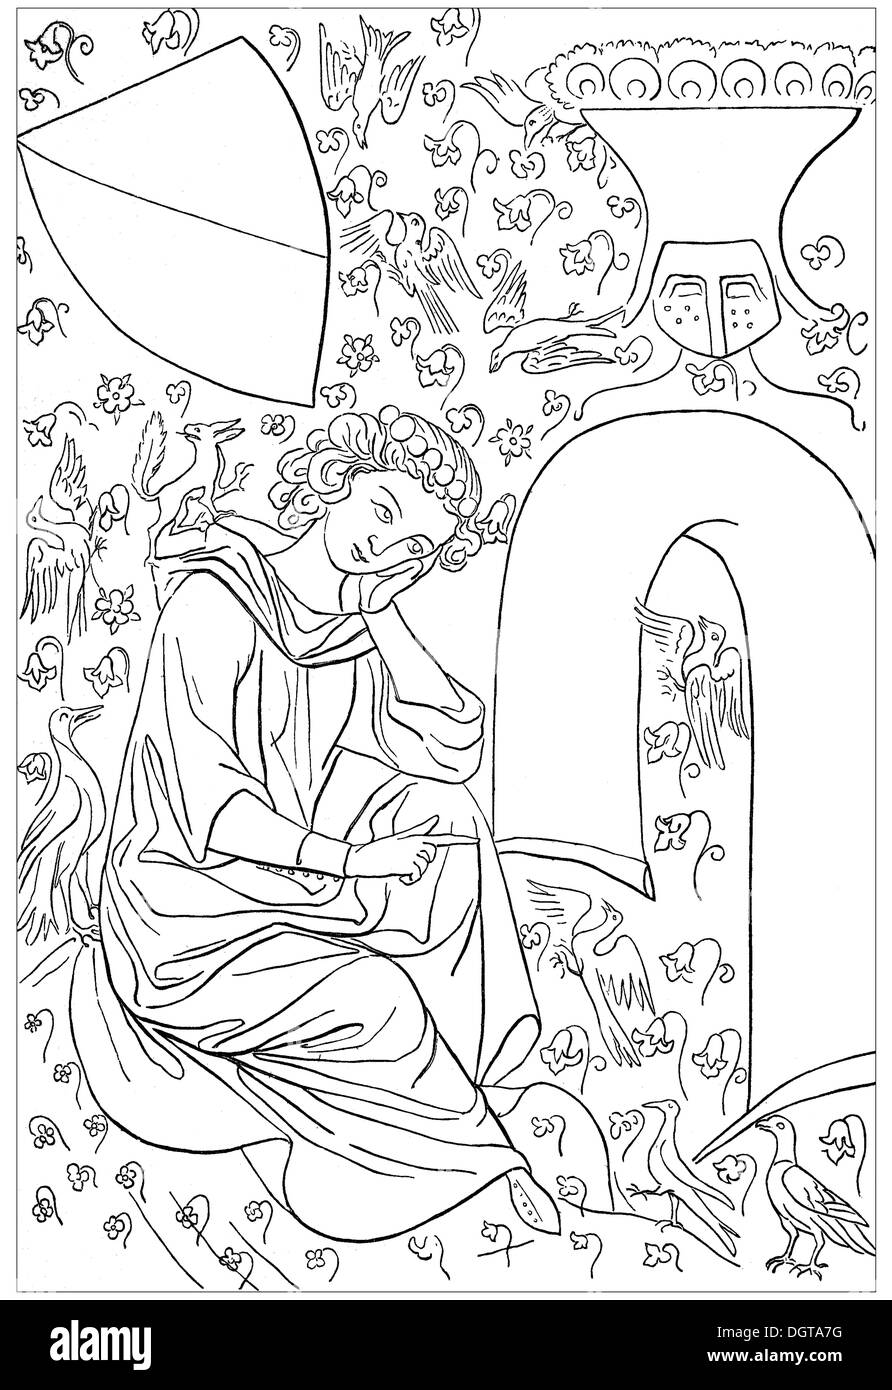 Heinrich von Beldeke, after the Parisian or Manesse Codex, historical image from History of German Literature from 1885 - Stock Image